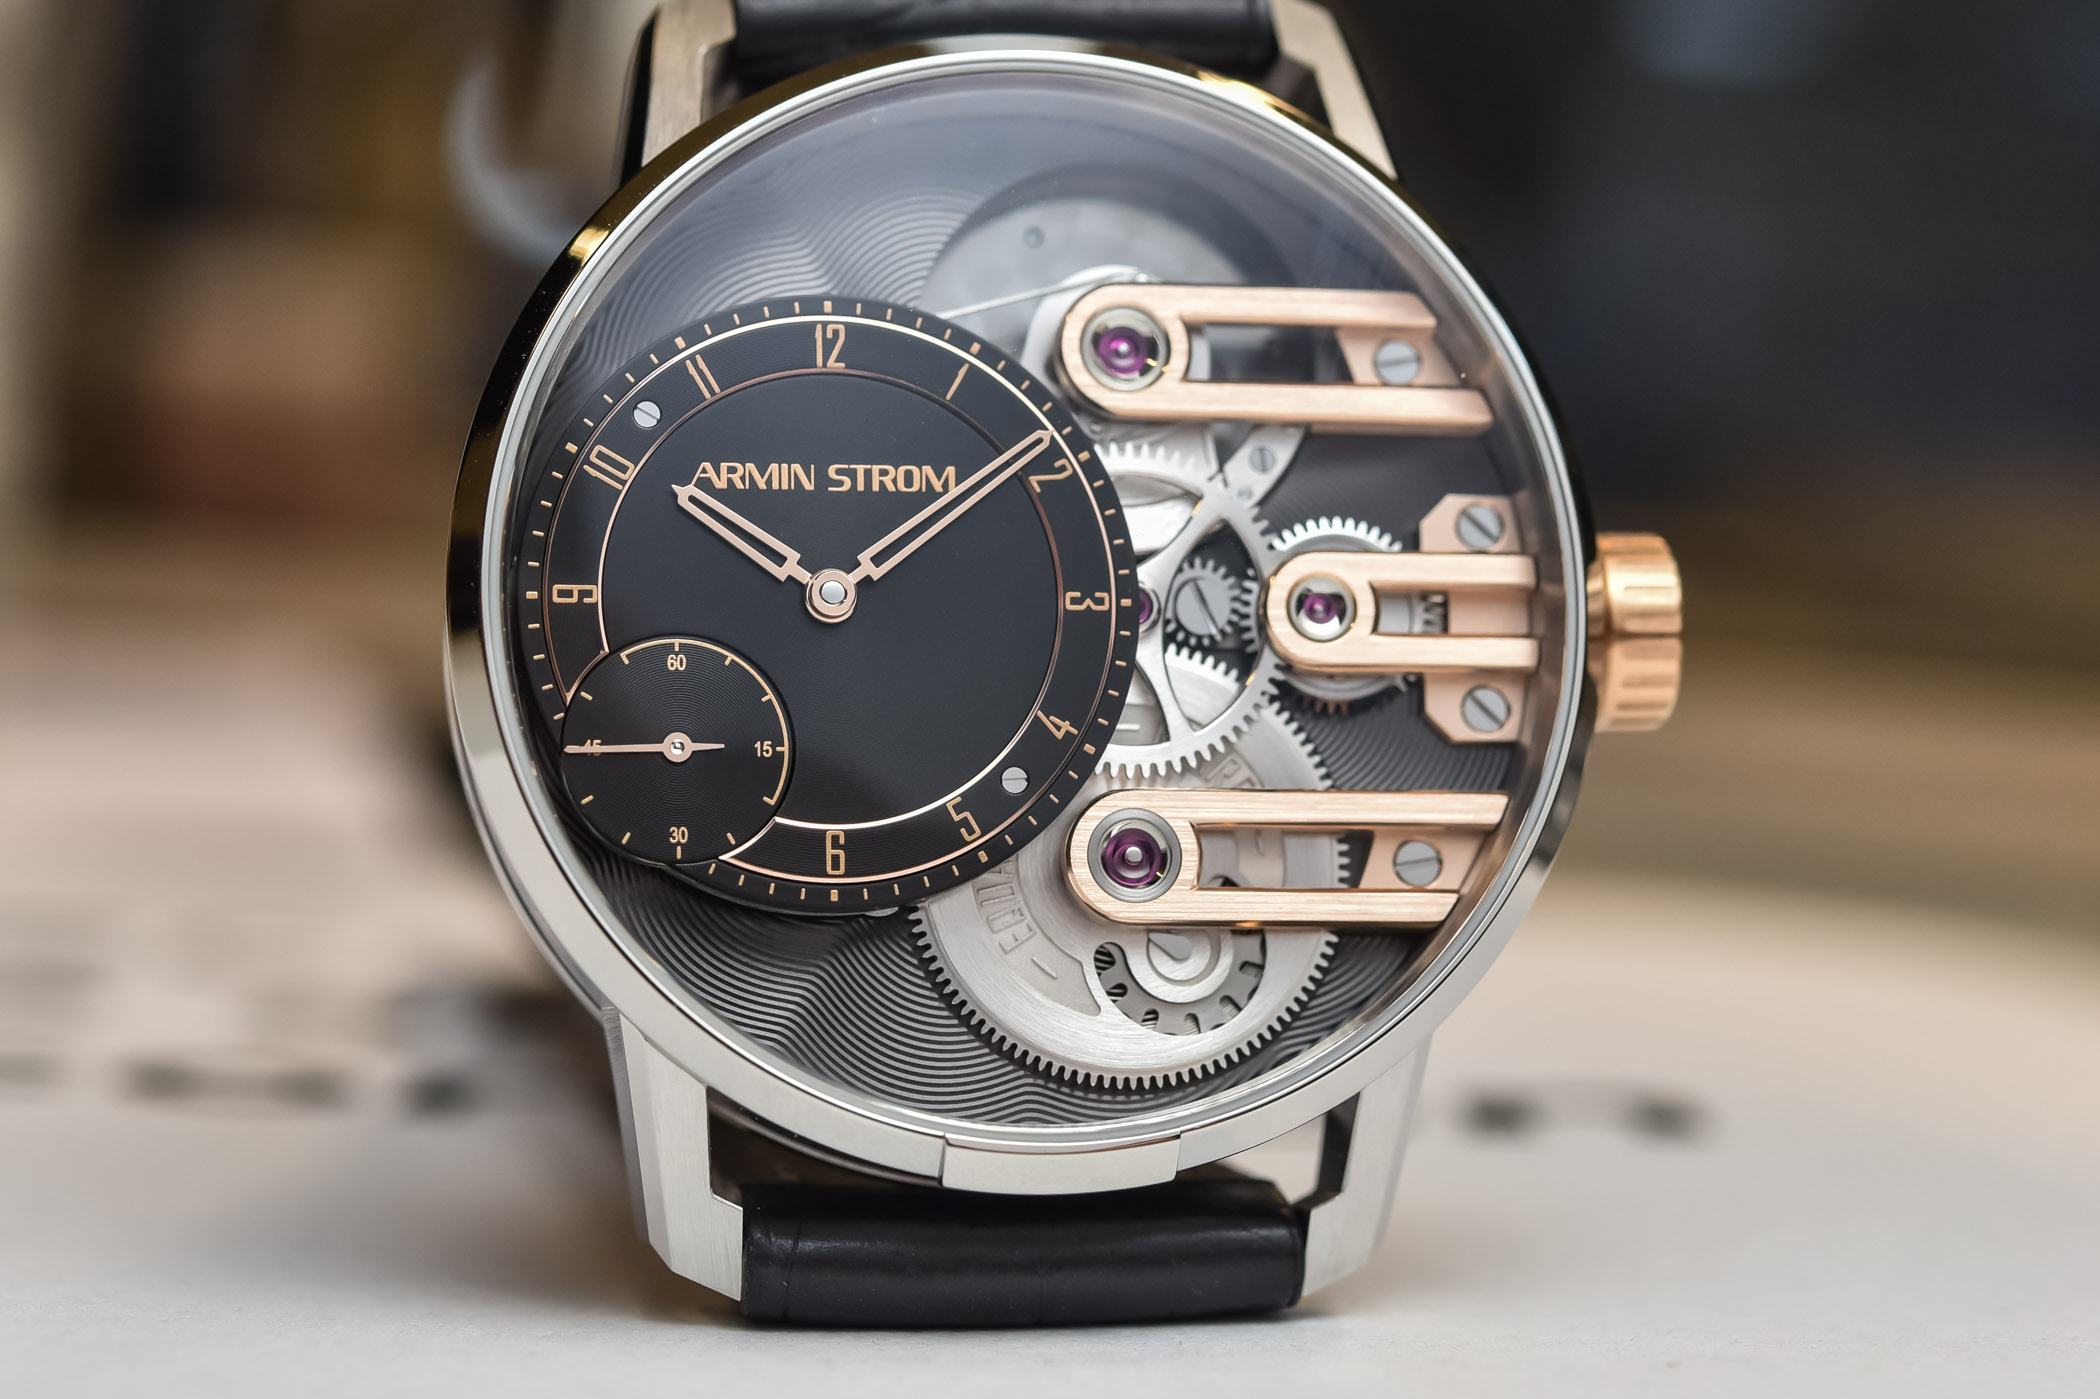 Armin Strom Gravity Equal Force The Limited Edition 5th Anniversary